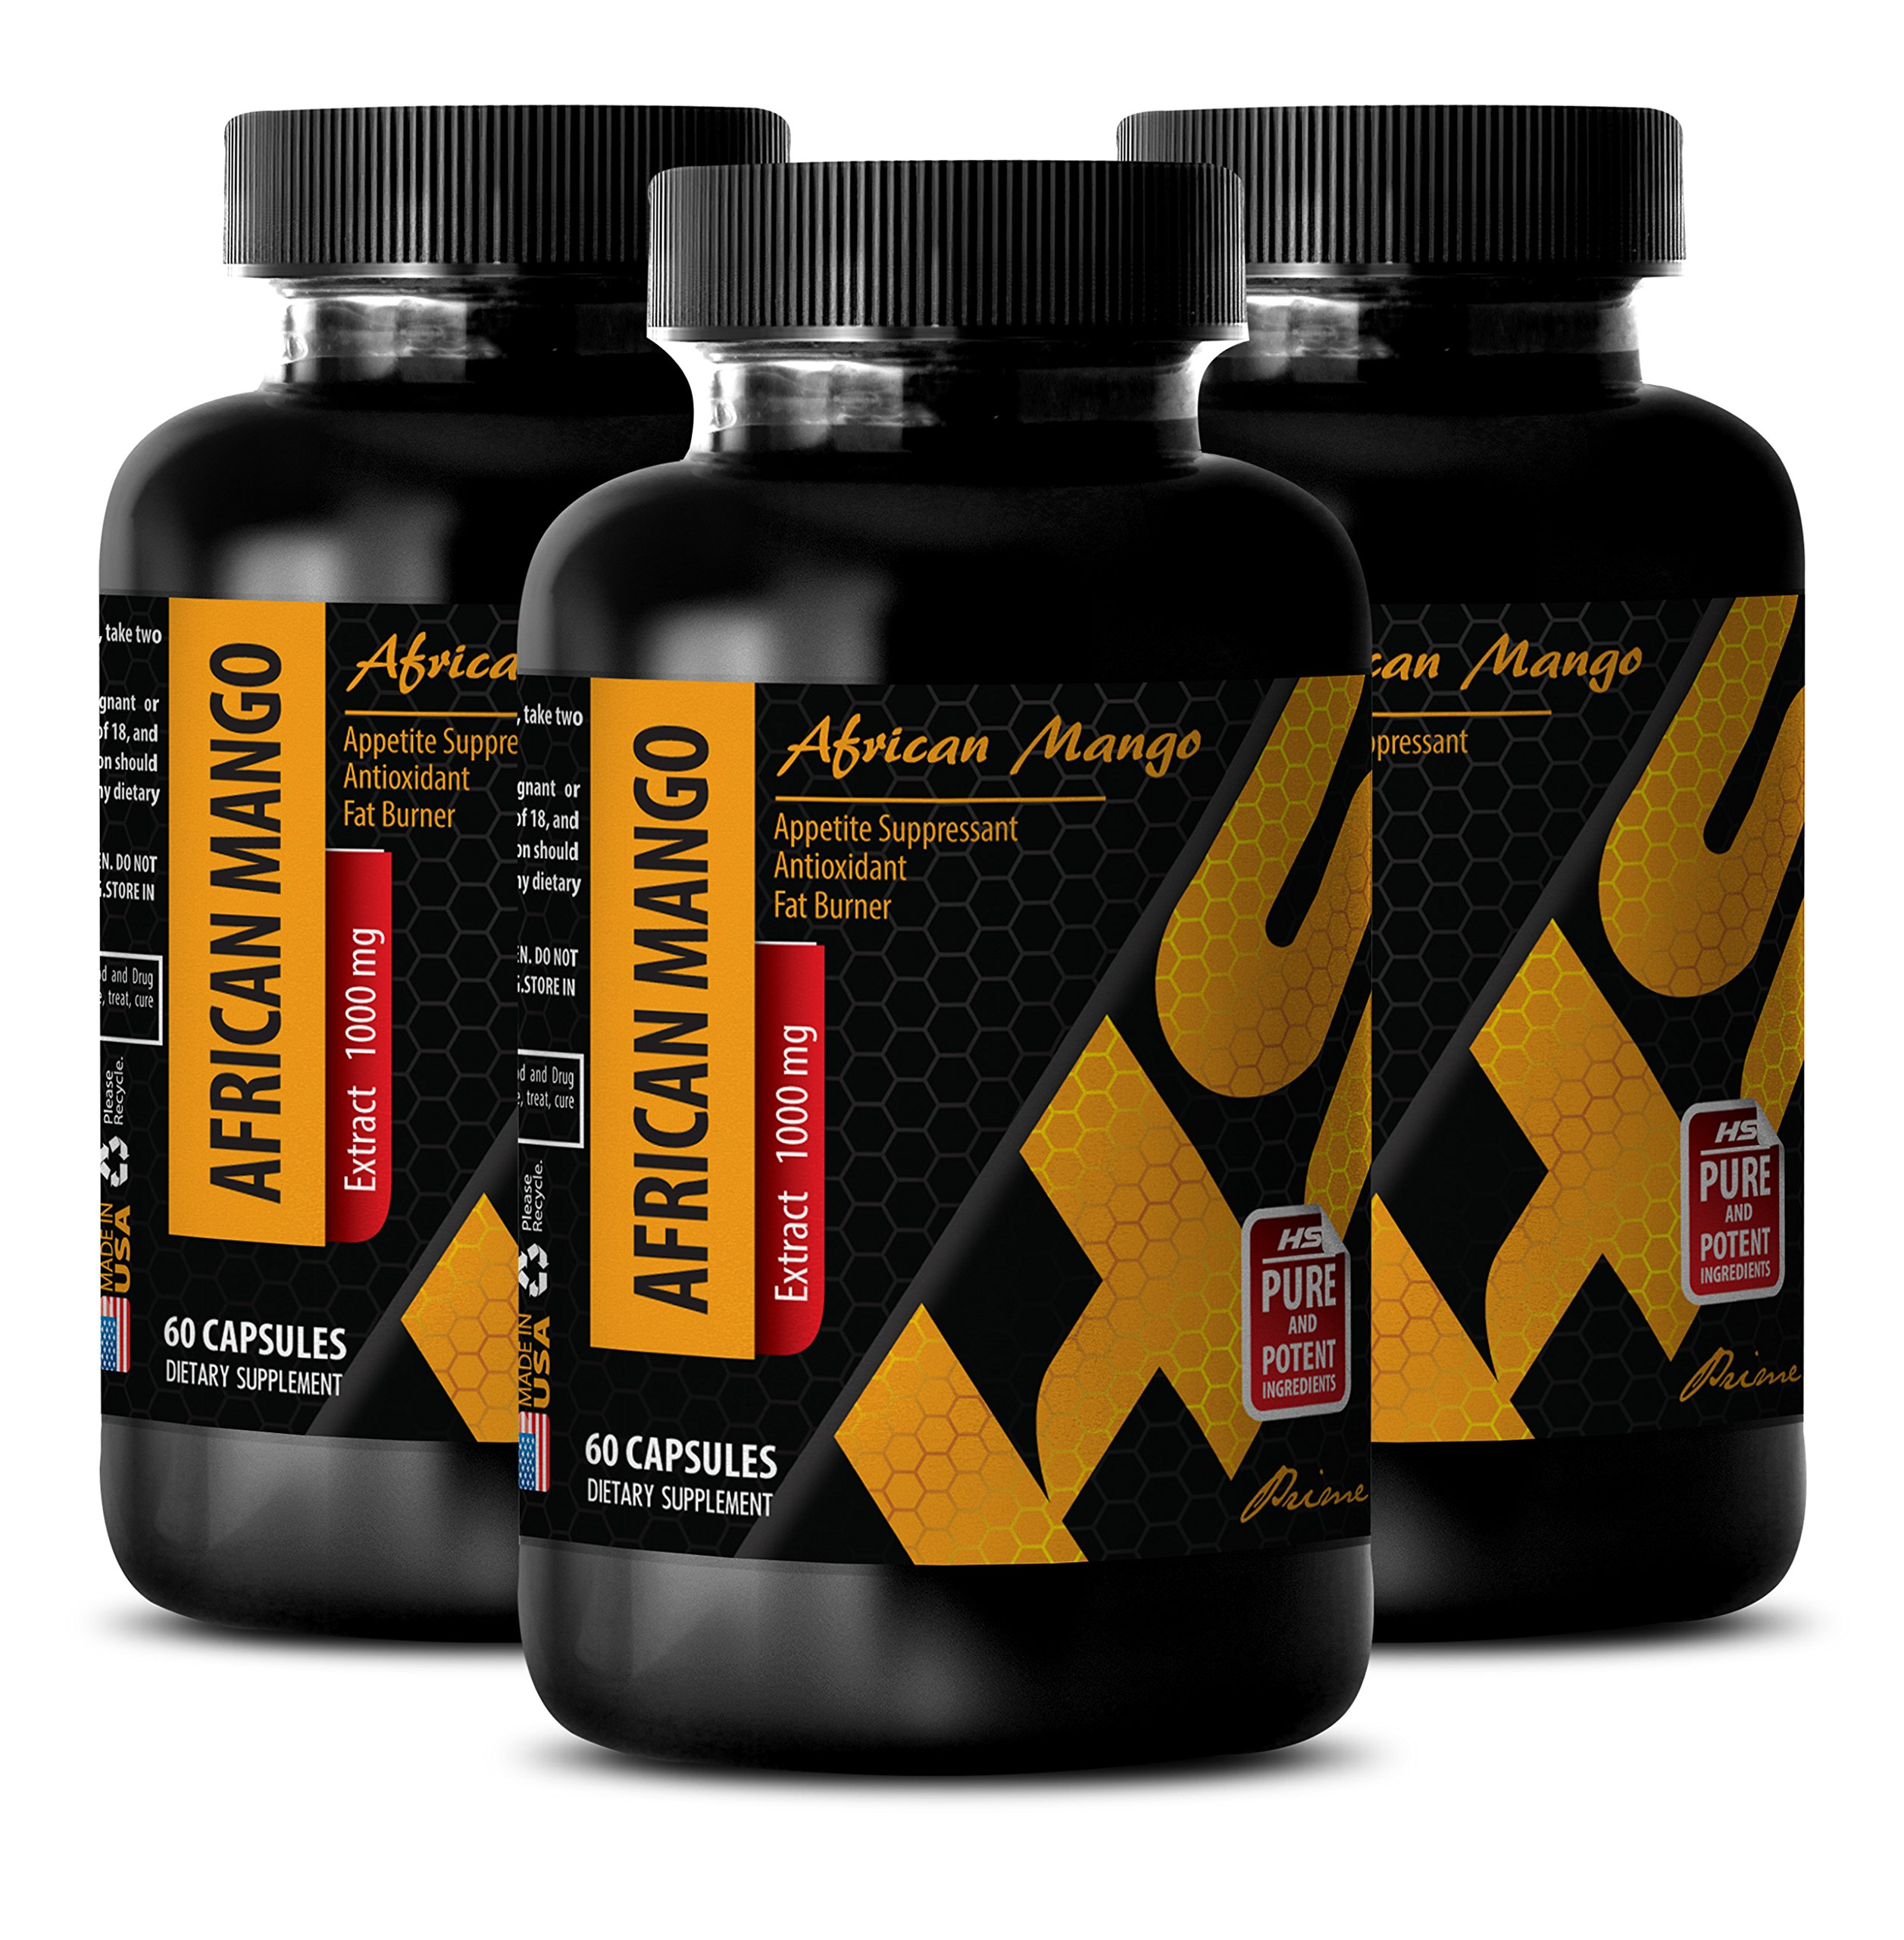 Weight loss supplements for men - AFRICAN MANGO EXTRACT - Natural fat burner pills - 3 Bottles 180 Capsules